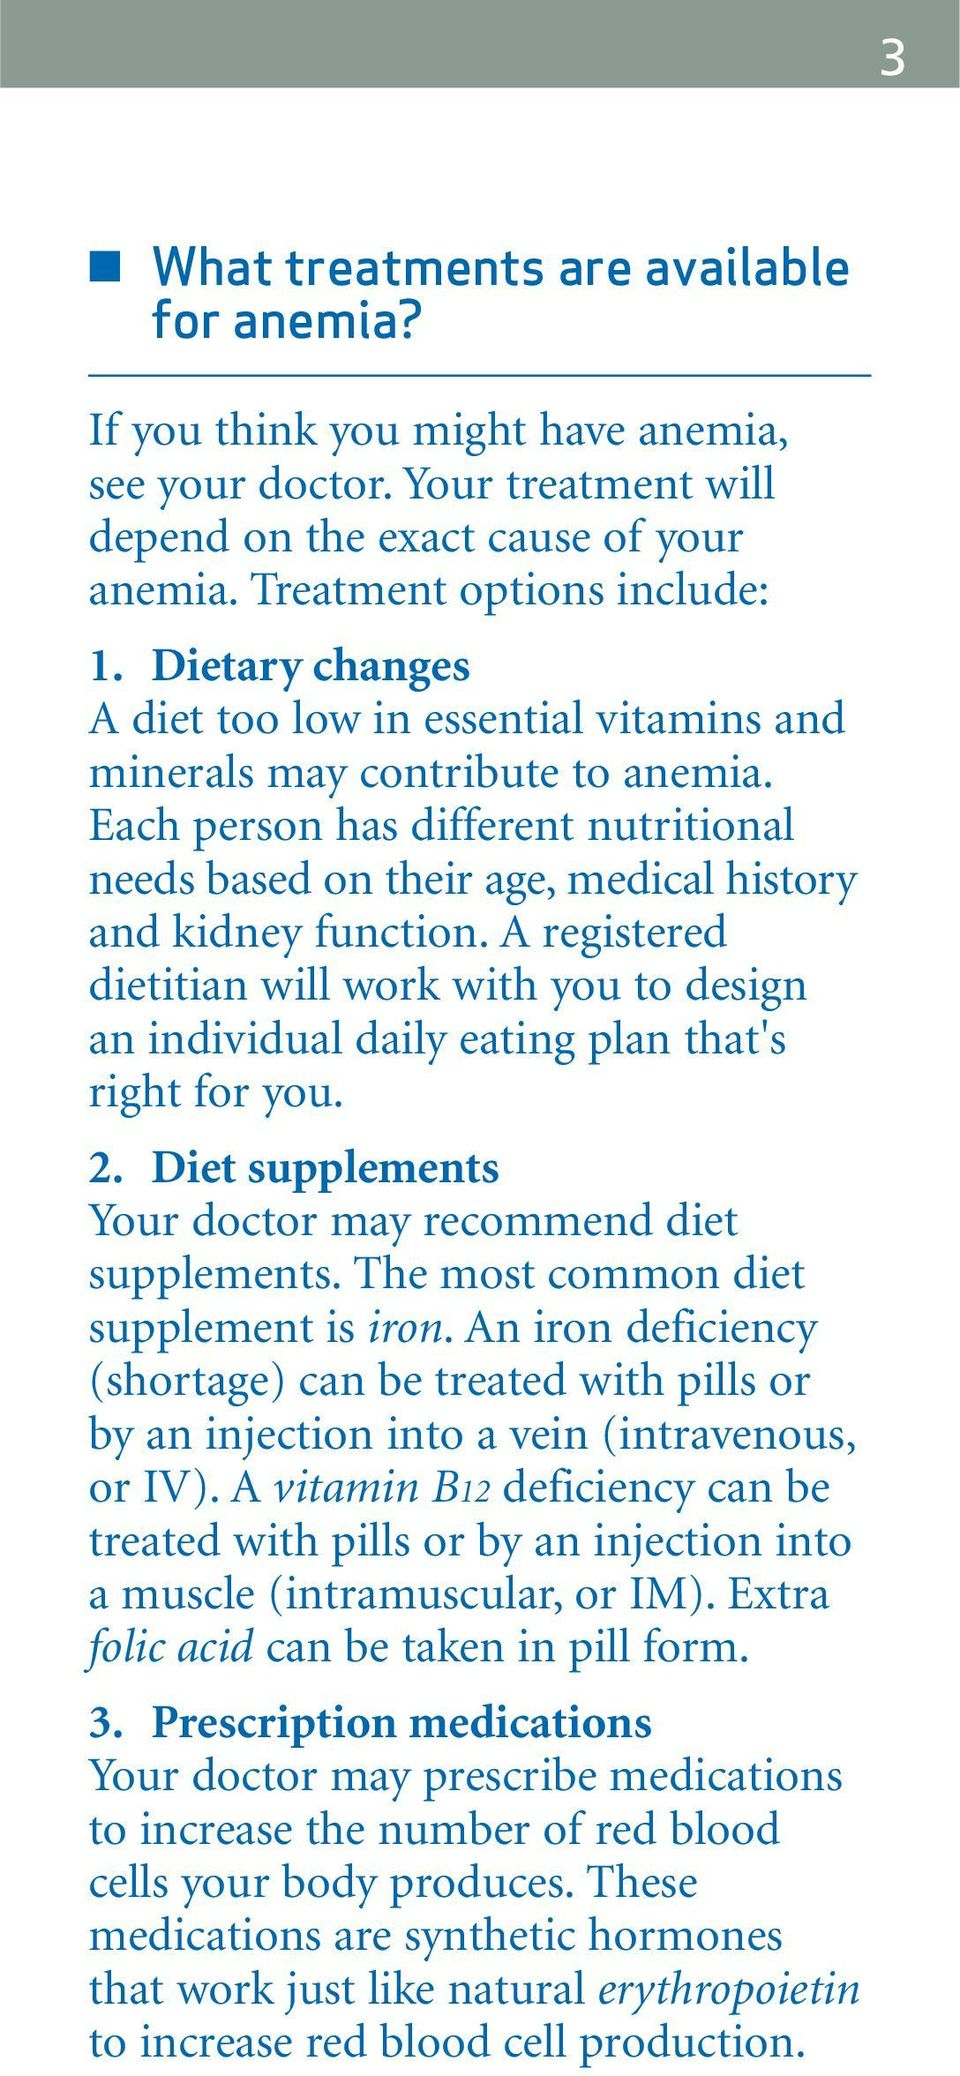 A registered dietitian will work with you to design an individual daily eating plan that's right for you. 2. Diet supplements Your doctor may recommend diet supplements.